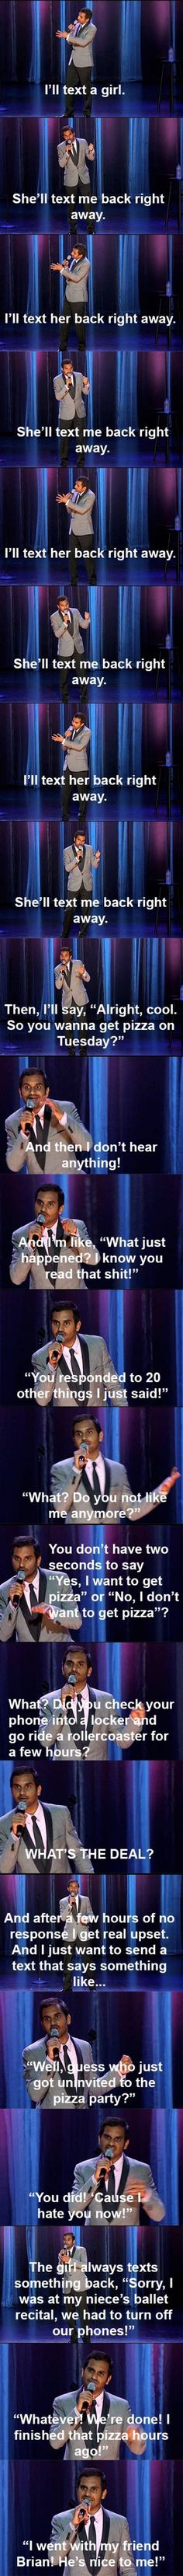 Aziz on texting. The reason girls think this is funny is because it's true. We do that... and usually if we don't text you back right away we're *hoping* you uninvite us to the pizza party. Though, I would never do that to Aziz.